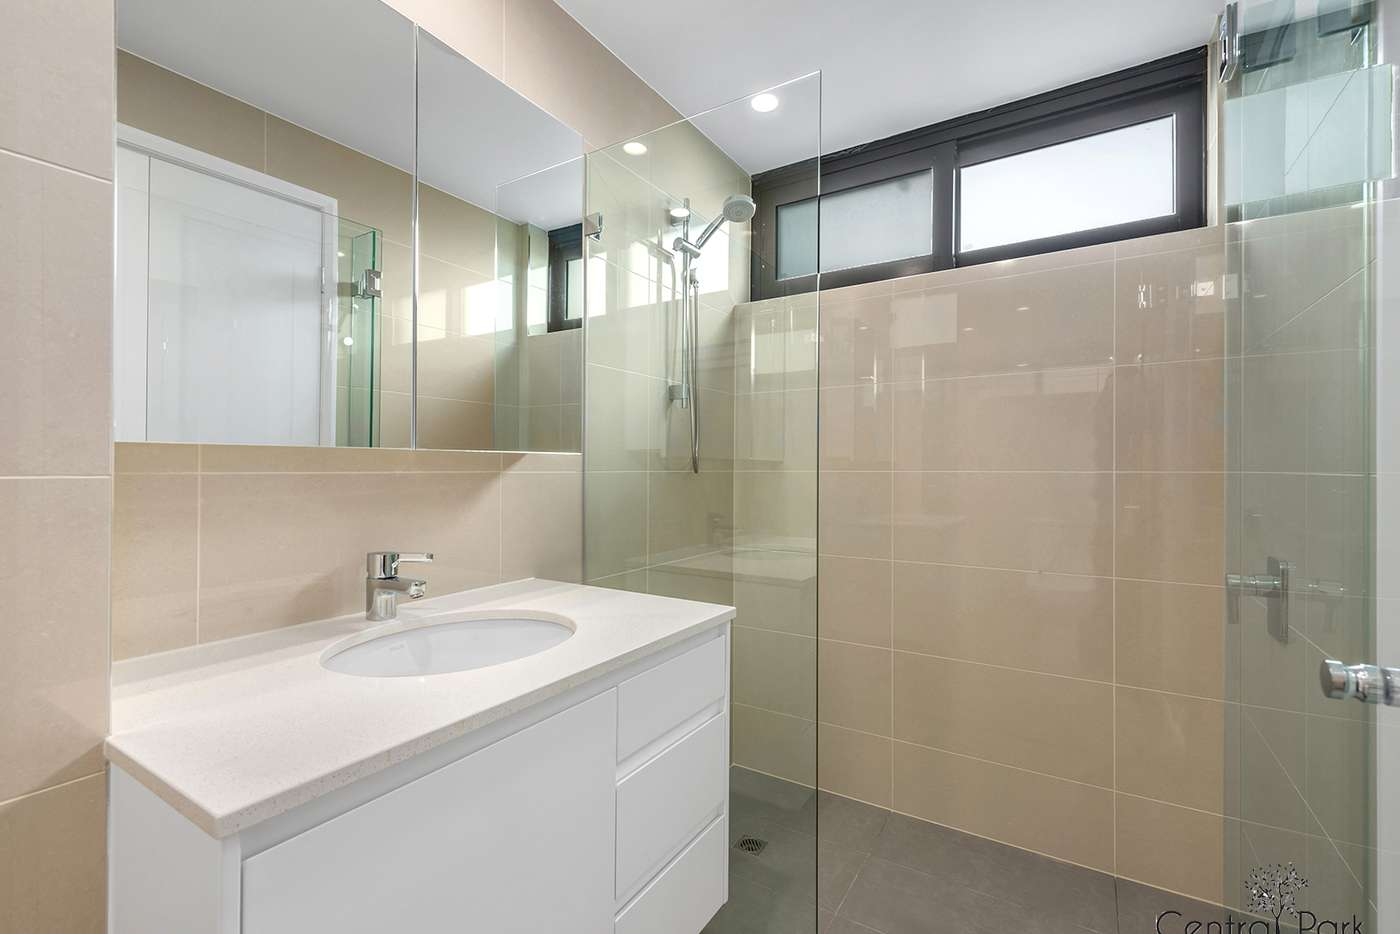 Sixth view of Homely apartment listing, 111/181 Clarence Rd, Indooroopilly QLD 4068